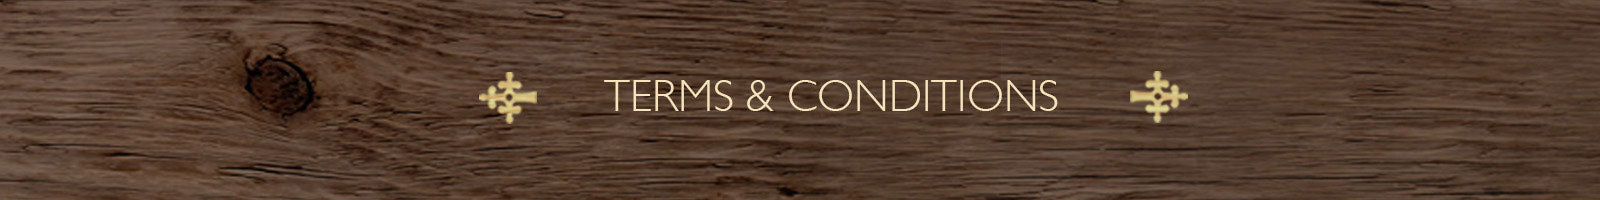 Terms & Conditions - The India Craft House